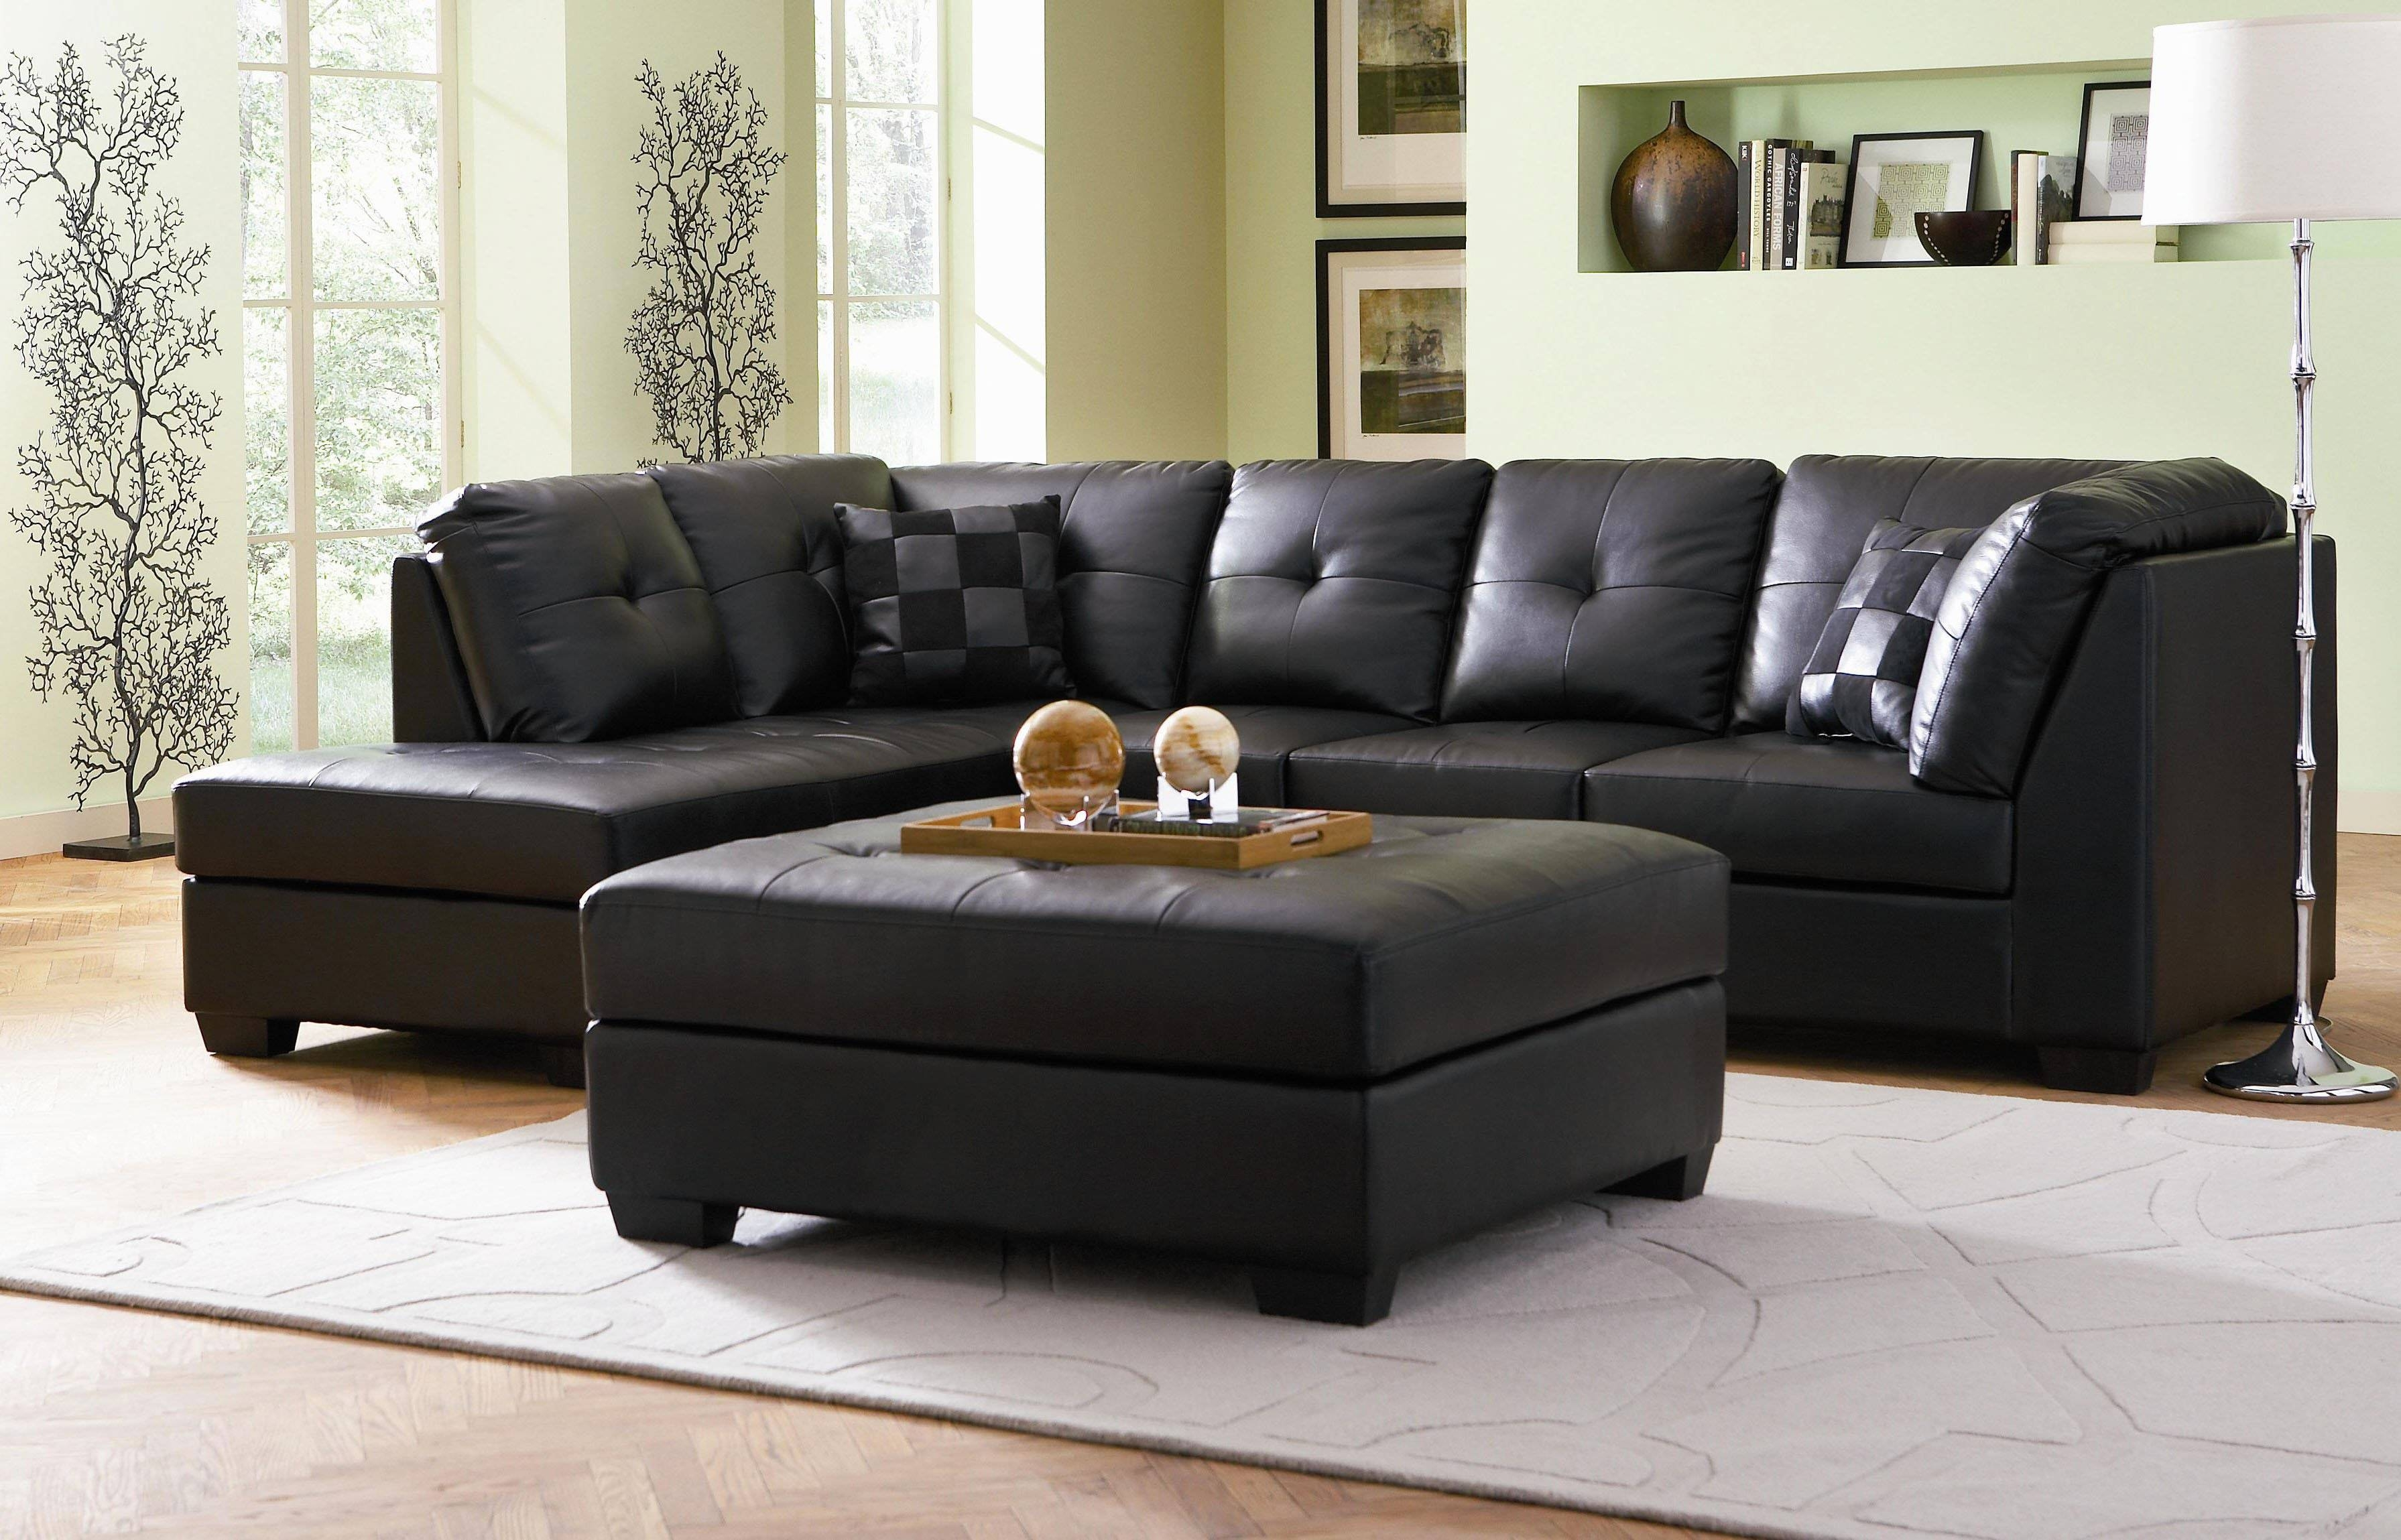 Albany Industries Sofa   Bible Saitama In Albany Industries Sectional Sofa  (Image 7 Of